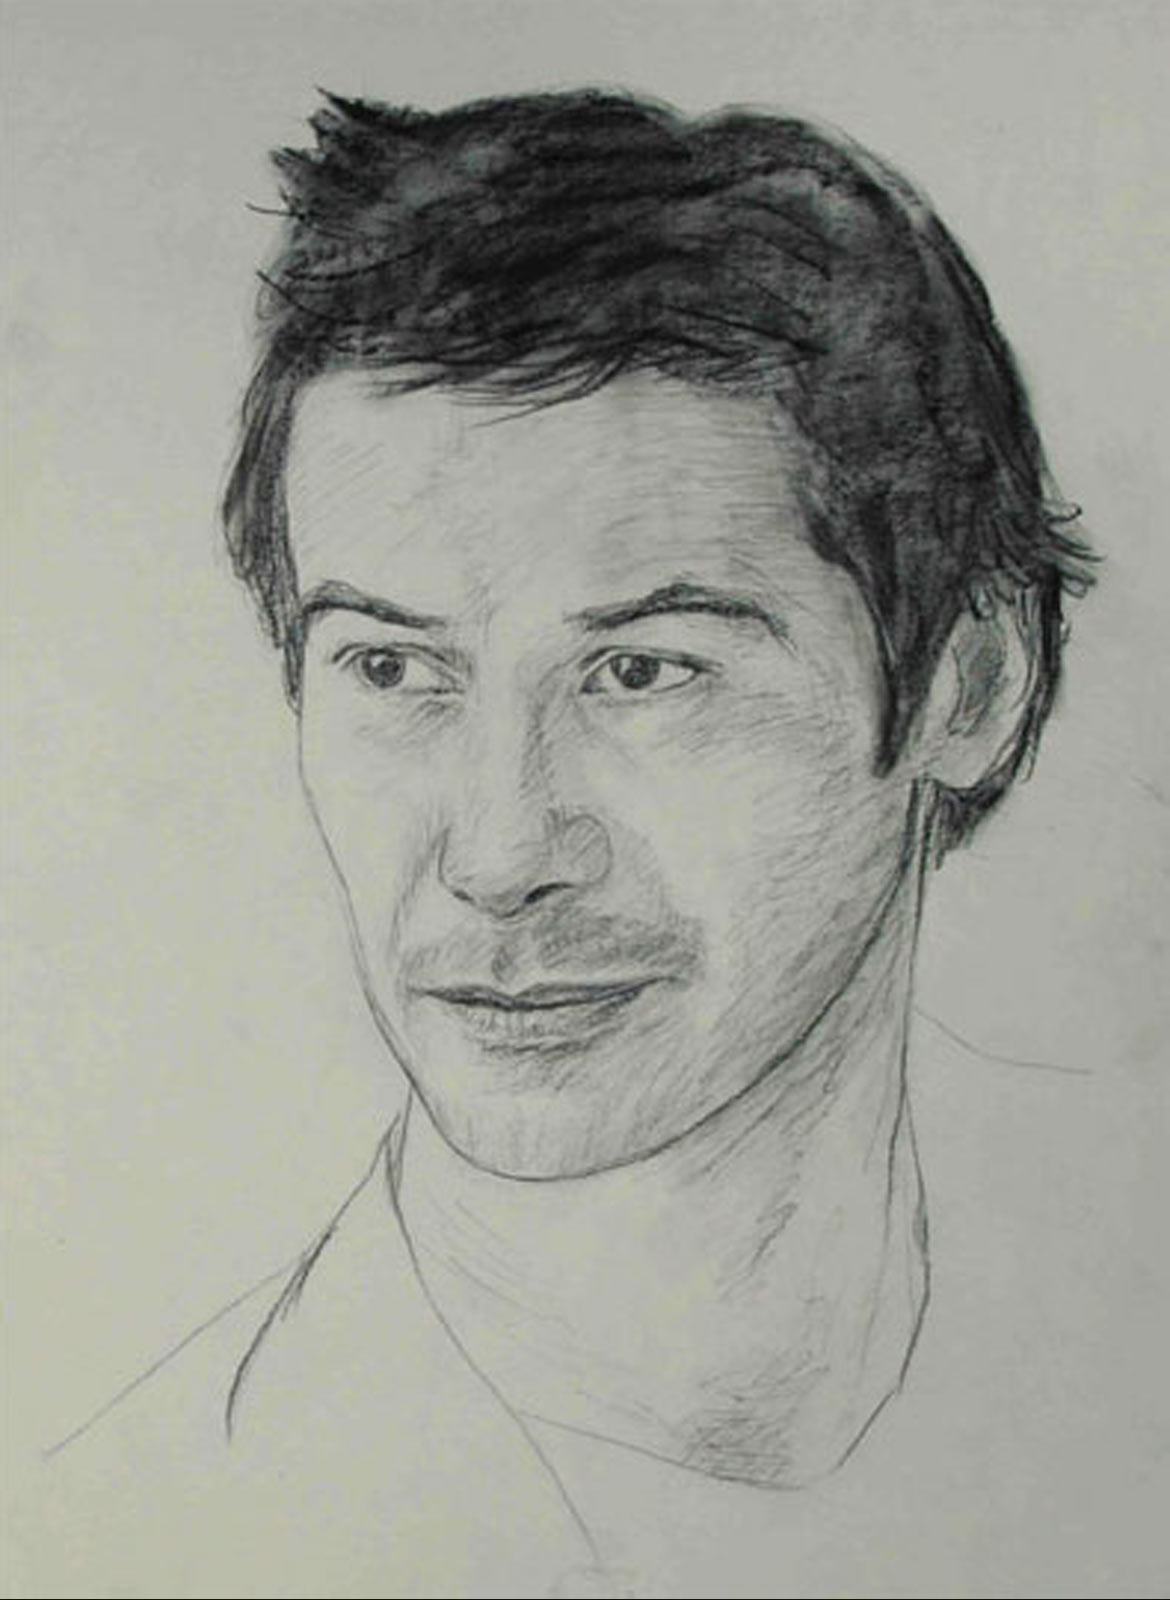 Keanu Reeves portrait drawing on paper